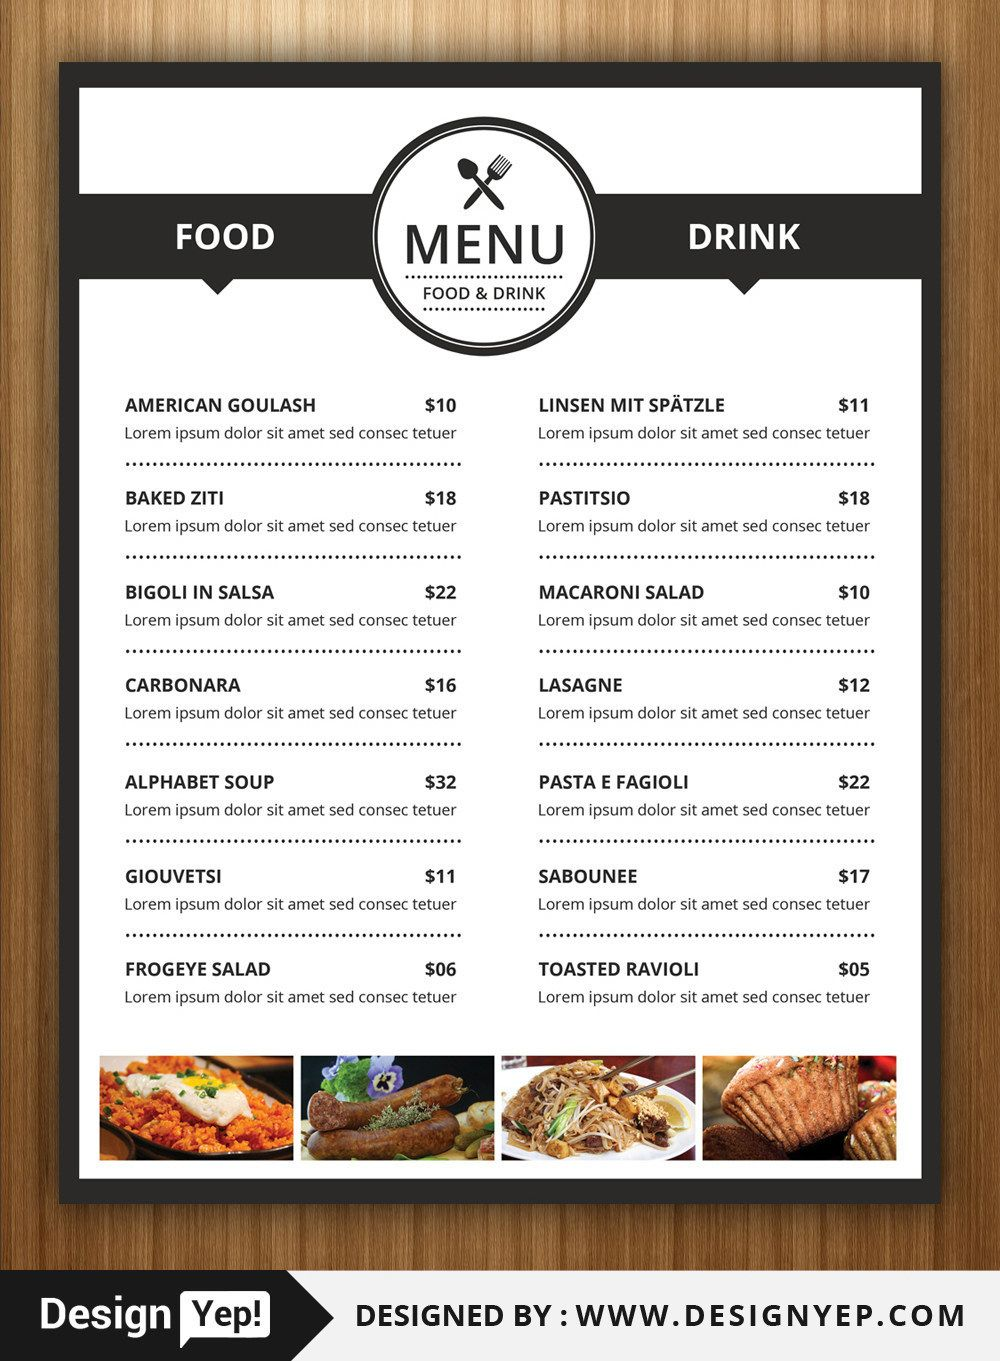 The Marvellous 40 Restaurant Food Menu Design Psd Templates Decolore Within Mexican Menu Template Free Dow Food Menu Design Food Menu Menu Design Template